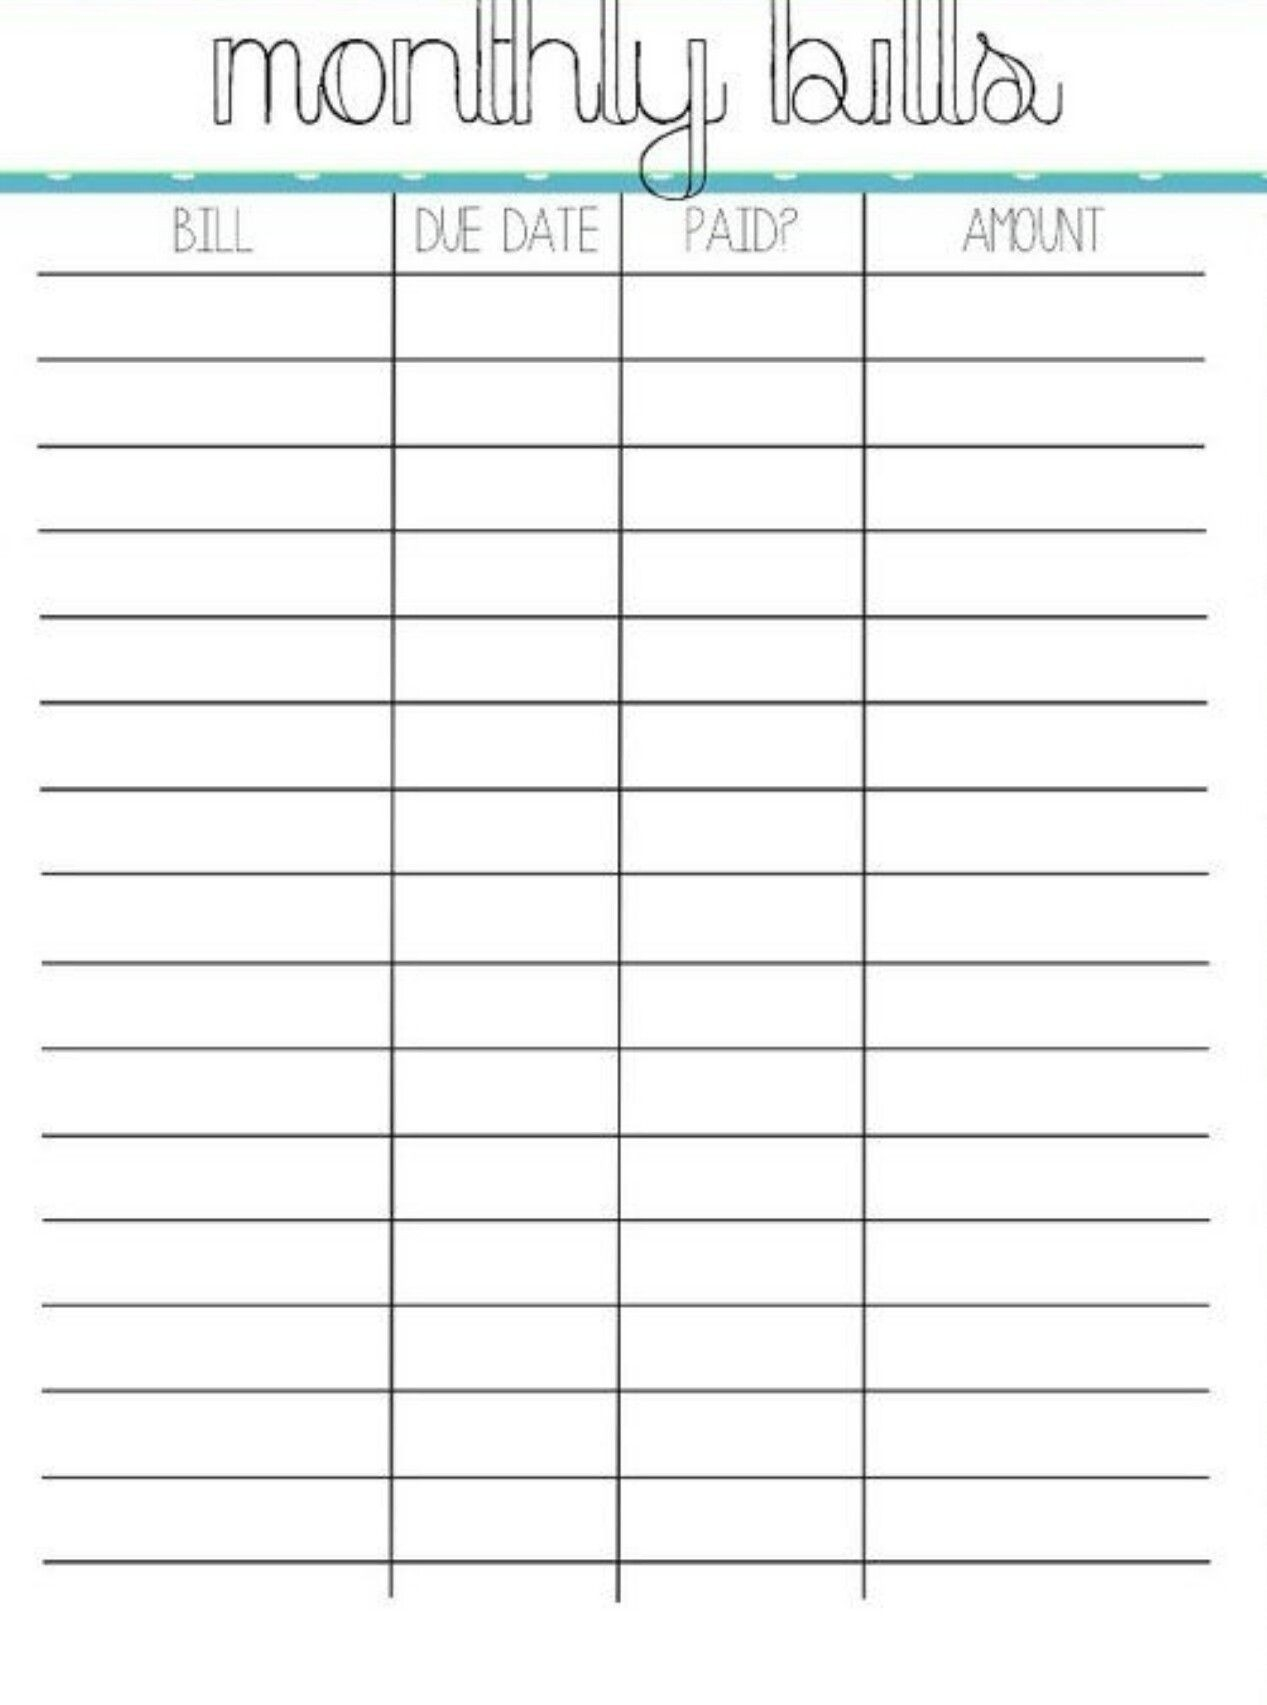 Pincrystal On Bills | Organizing Monthly Bills, Bill  Fillable Monthly Bill Payment Worksheet